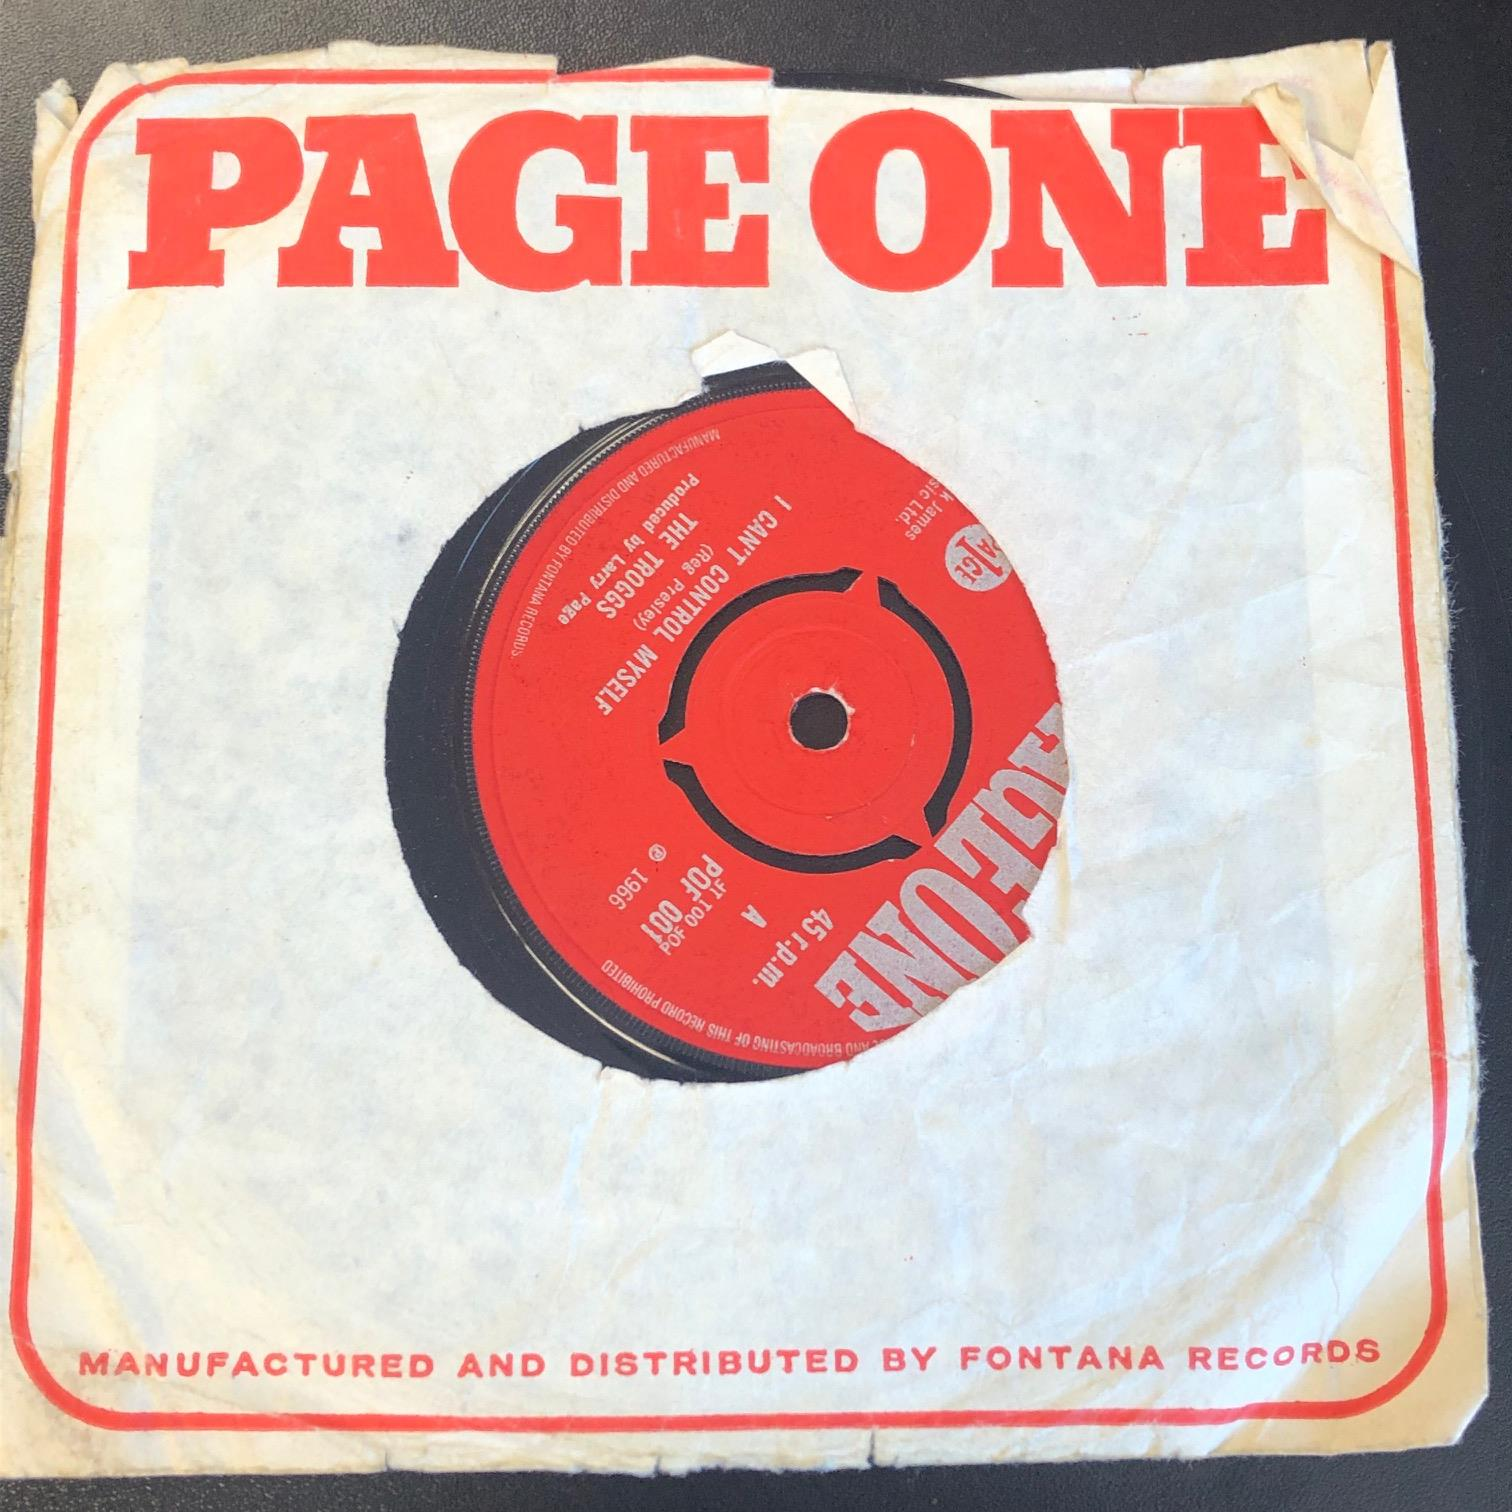 Vinyl - Collection of over 70 45's spanning genres and decades including Fleetwood Mac, Chicken - Image 12 of 15